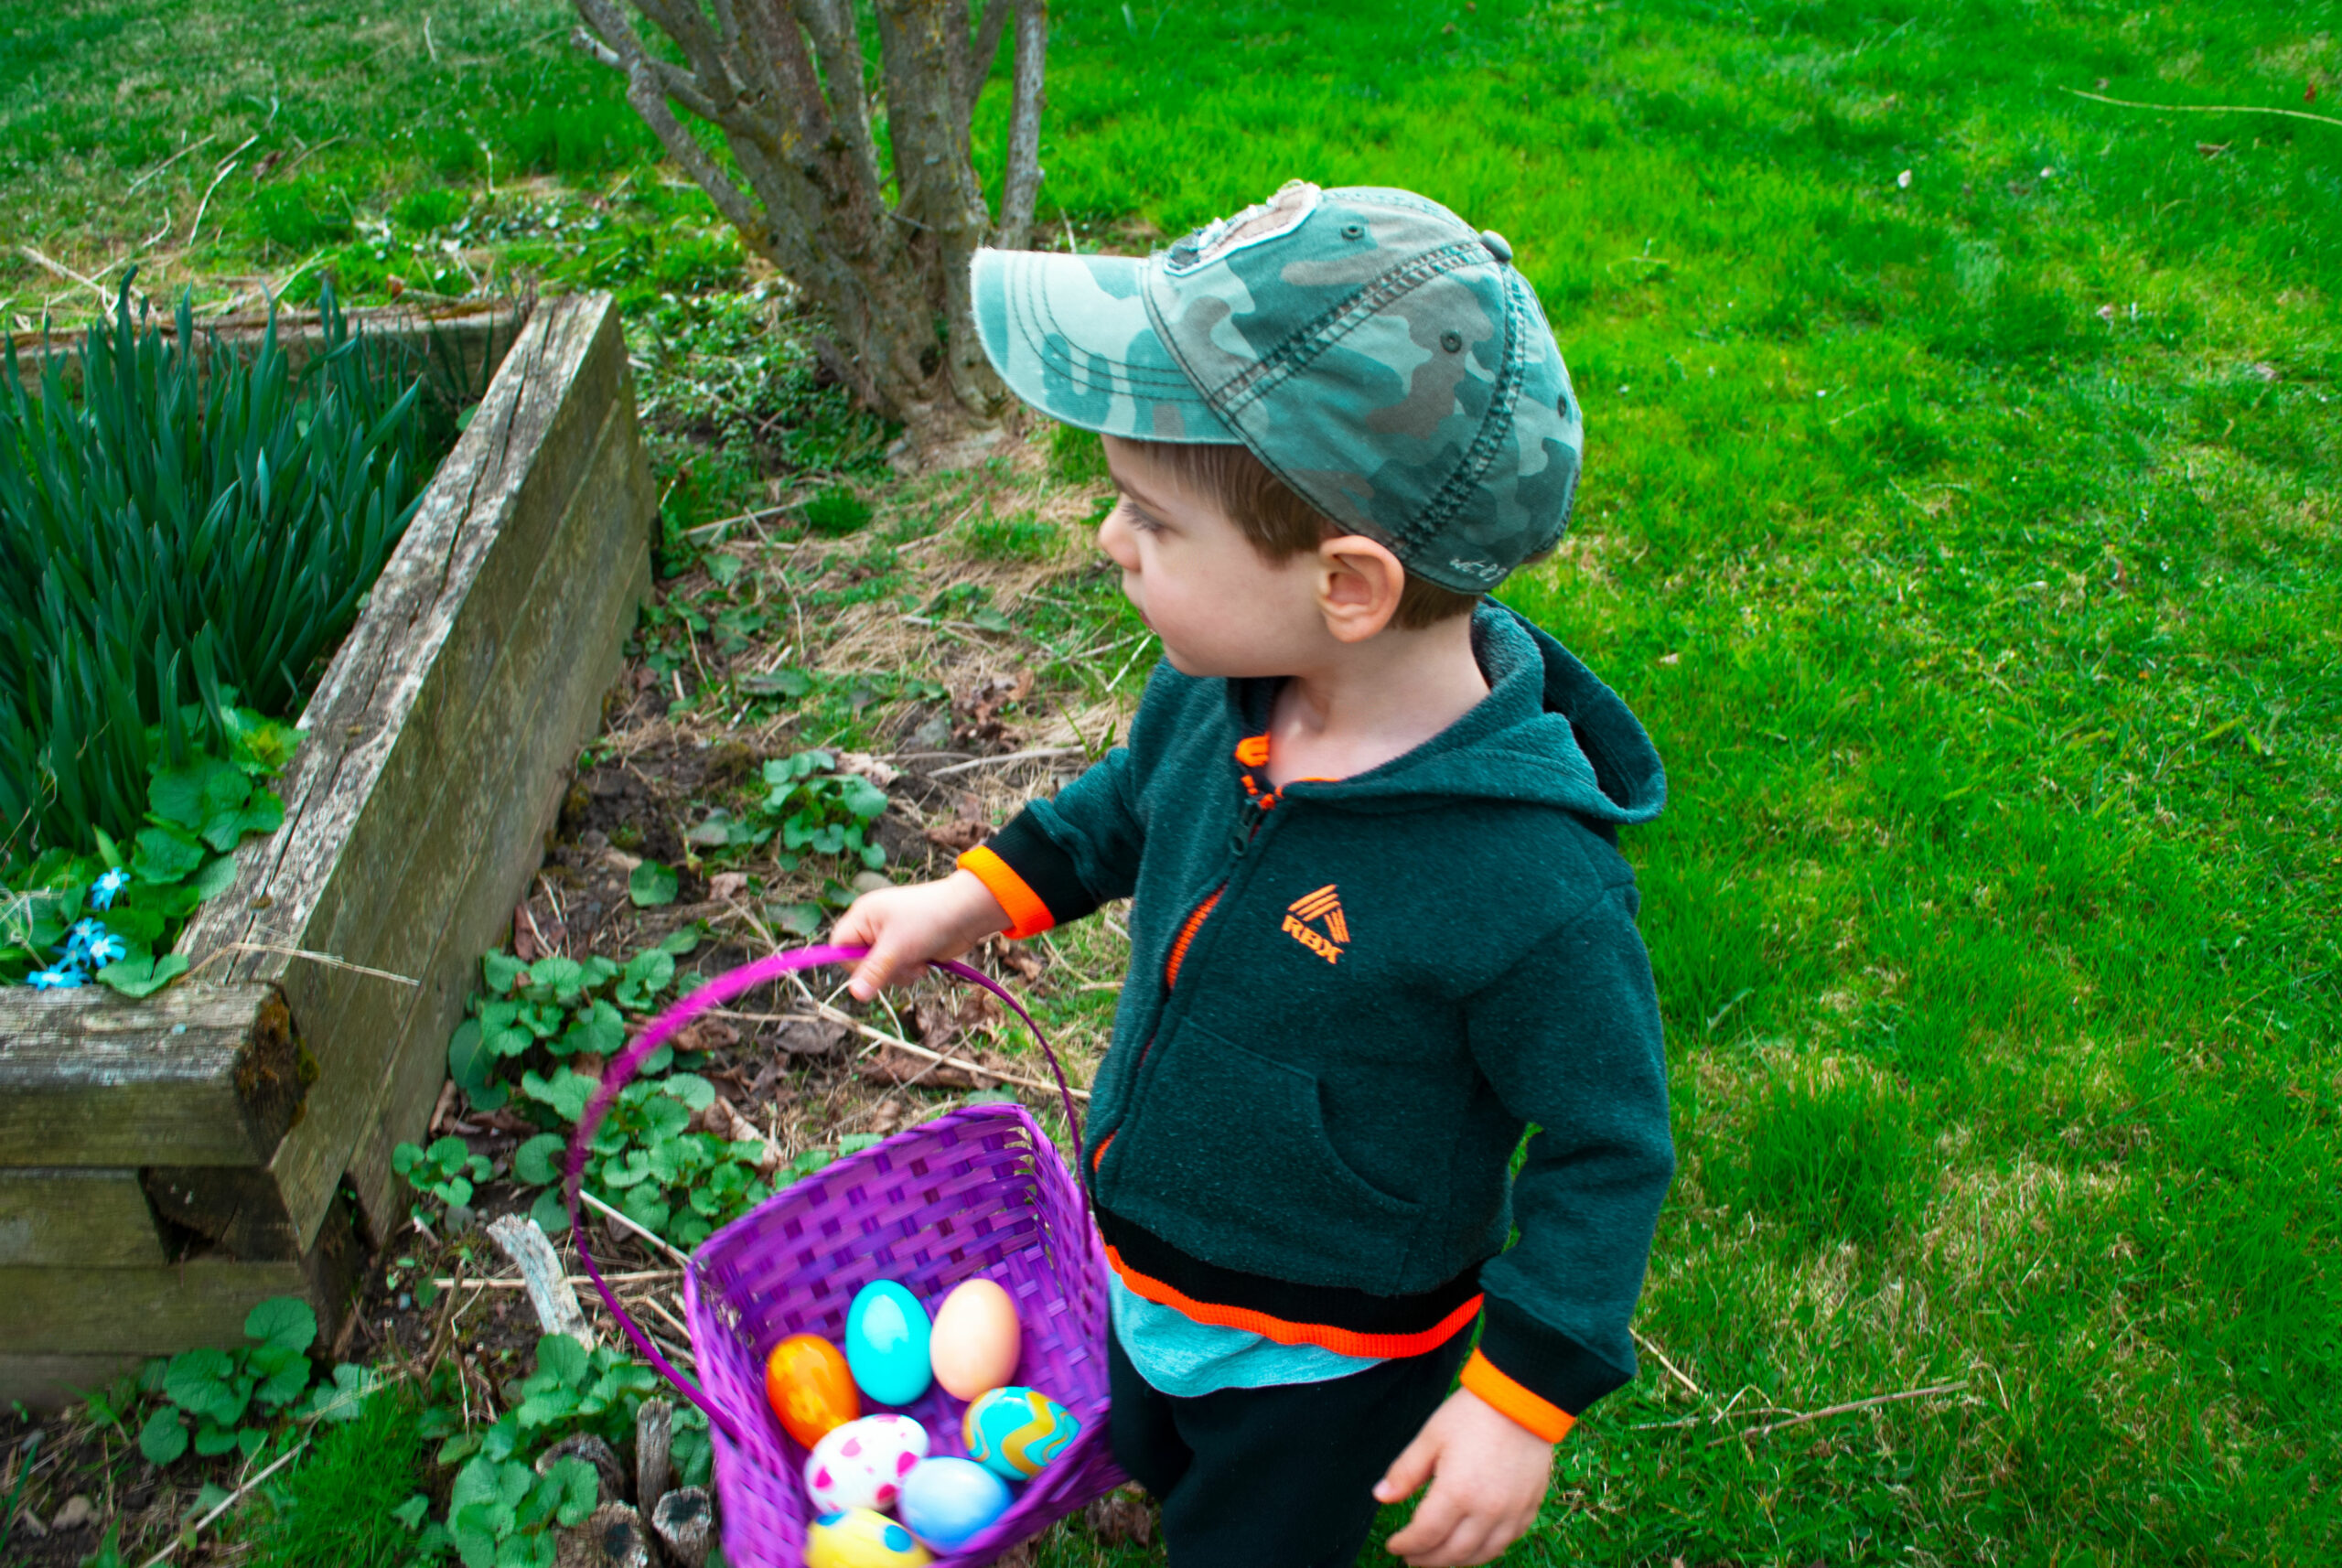 6 Fun Easter Activities to do With Your Kids During COVID-19